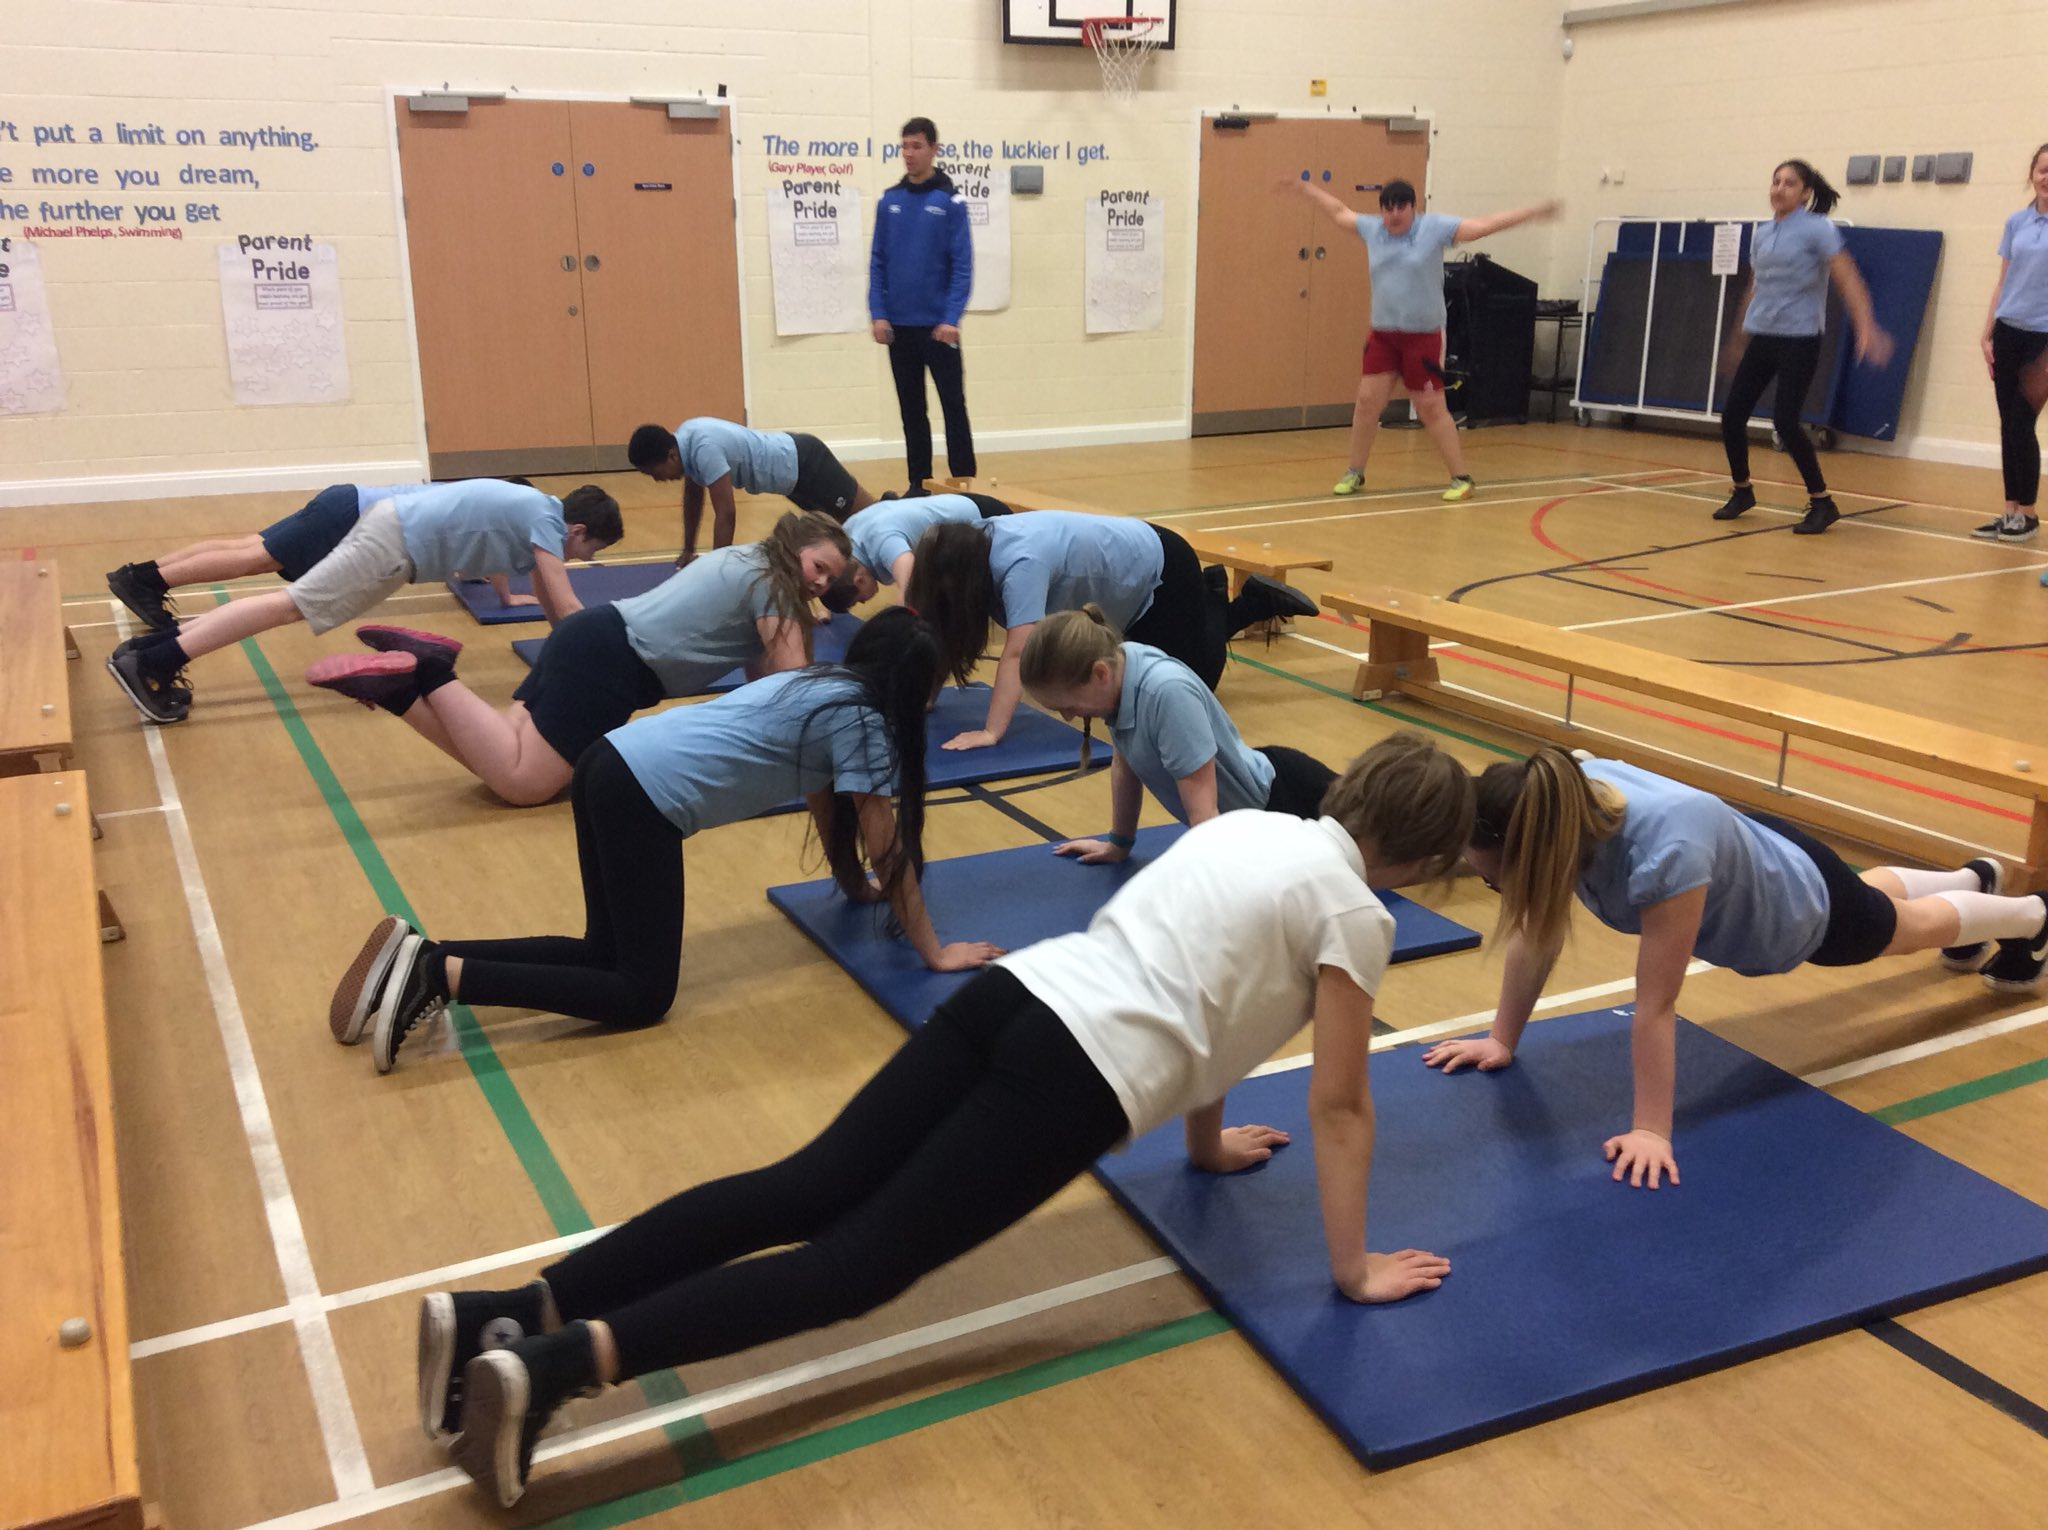 P7 being put their paces by Commonwealth athlete David Smith today #teamscotland #teamburgh https://t.co/dwihjADLMp